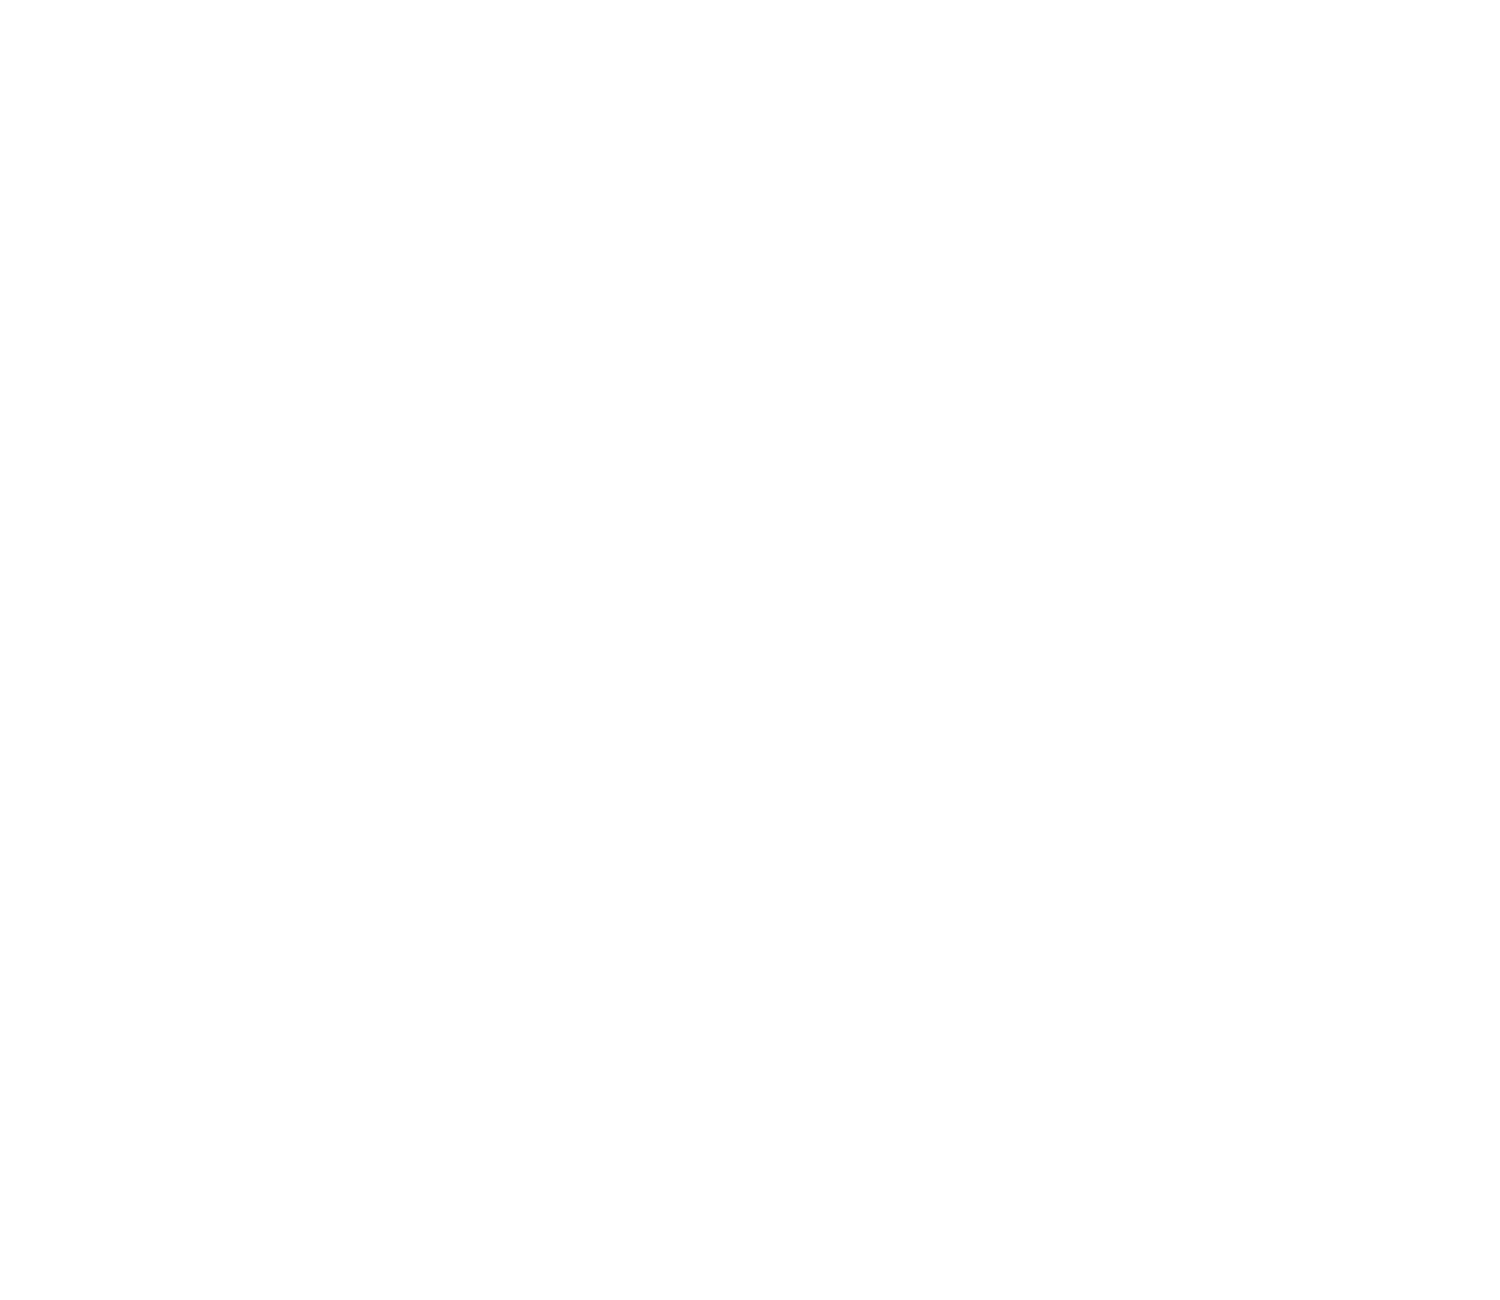 Bea Furnishings